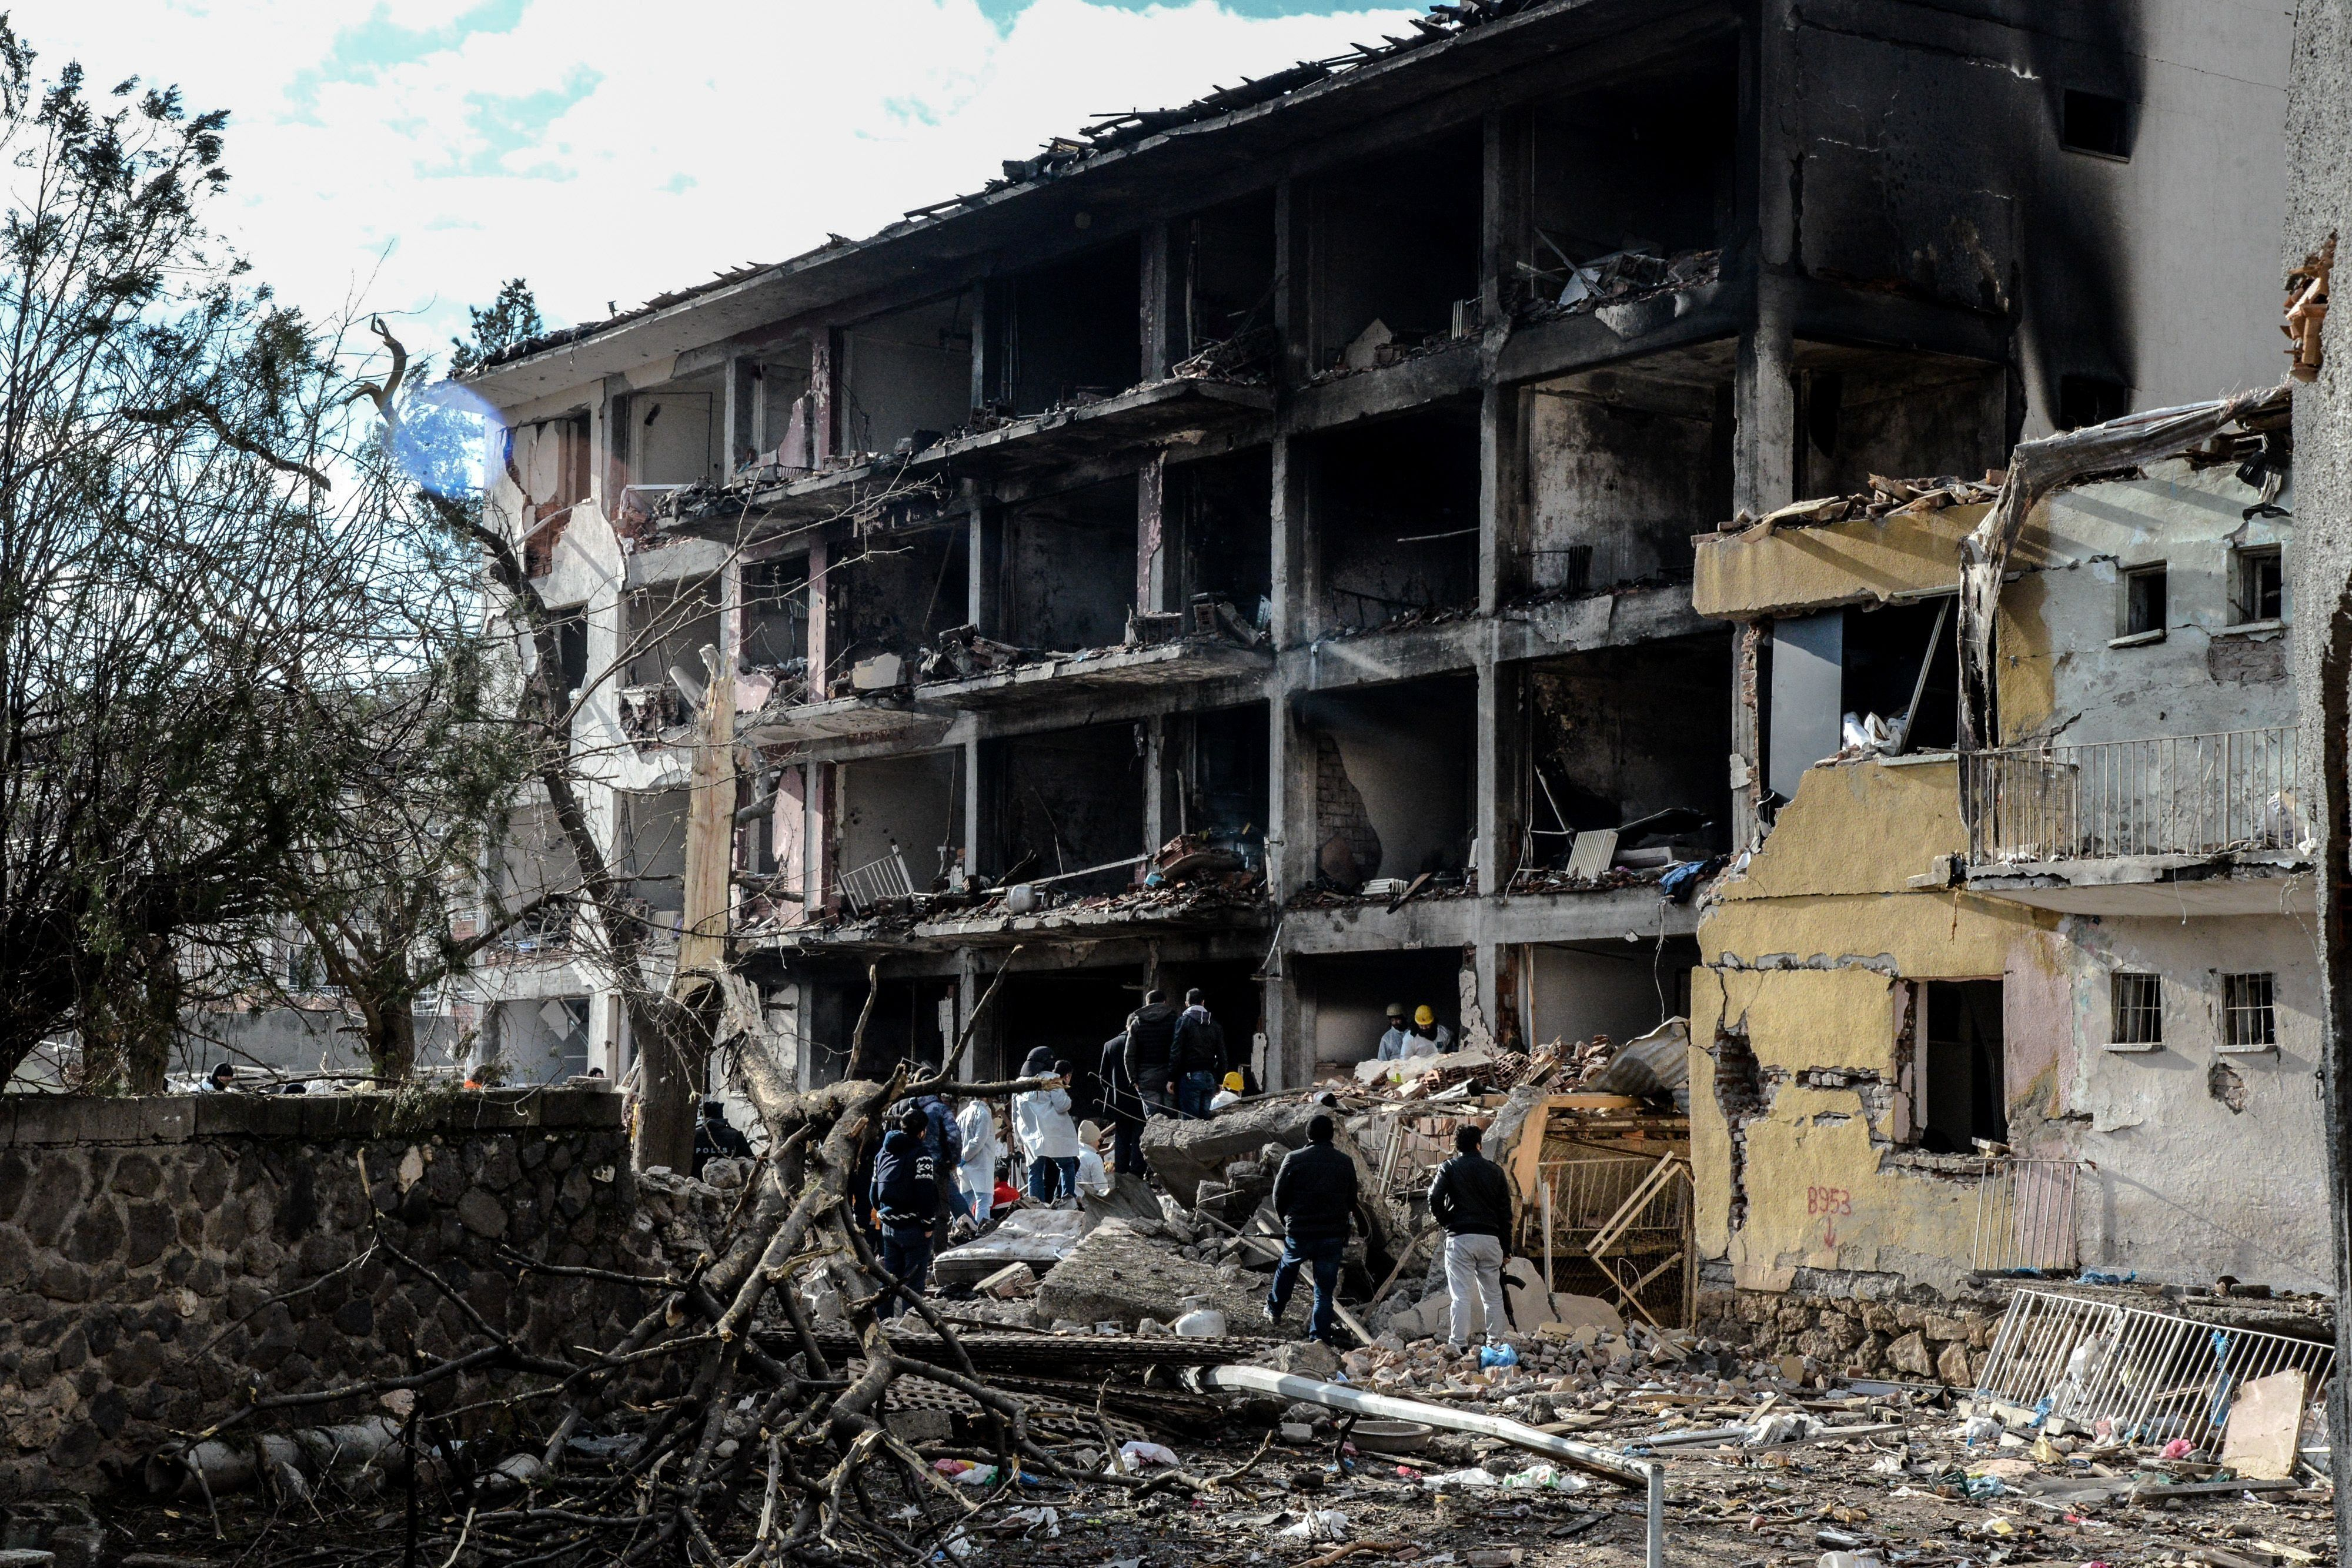 Turkish police search through the wreckage of a blast damaged building on January 14, 2016 in Diyarbakir. Six people died and 39 others were wounded in a car bomb attack blamed on Kurdish rebels that ripped through a police station and an adjacent housing complex for officers and their families in southeastern Turkey, security forces said Thursday, updating an earlier toll of five. / AFP / ILYAS AKENGIN        (Photo credit should read ILYAS AKENGIN/AFP/Getty Images)